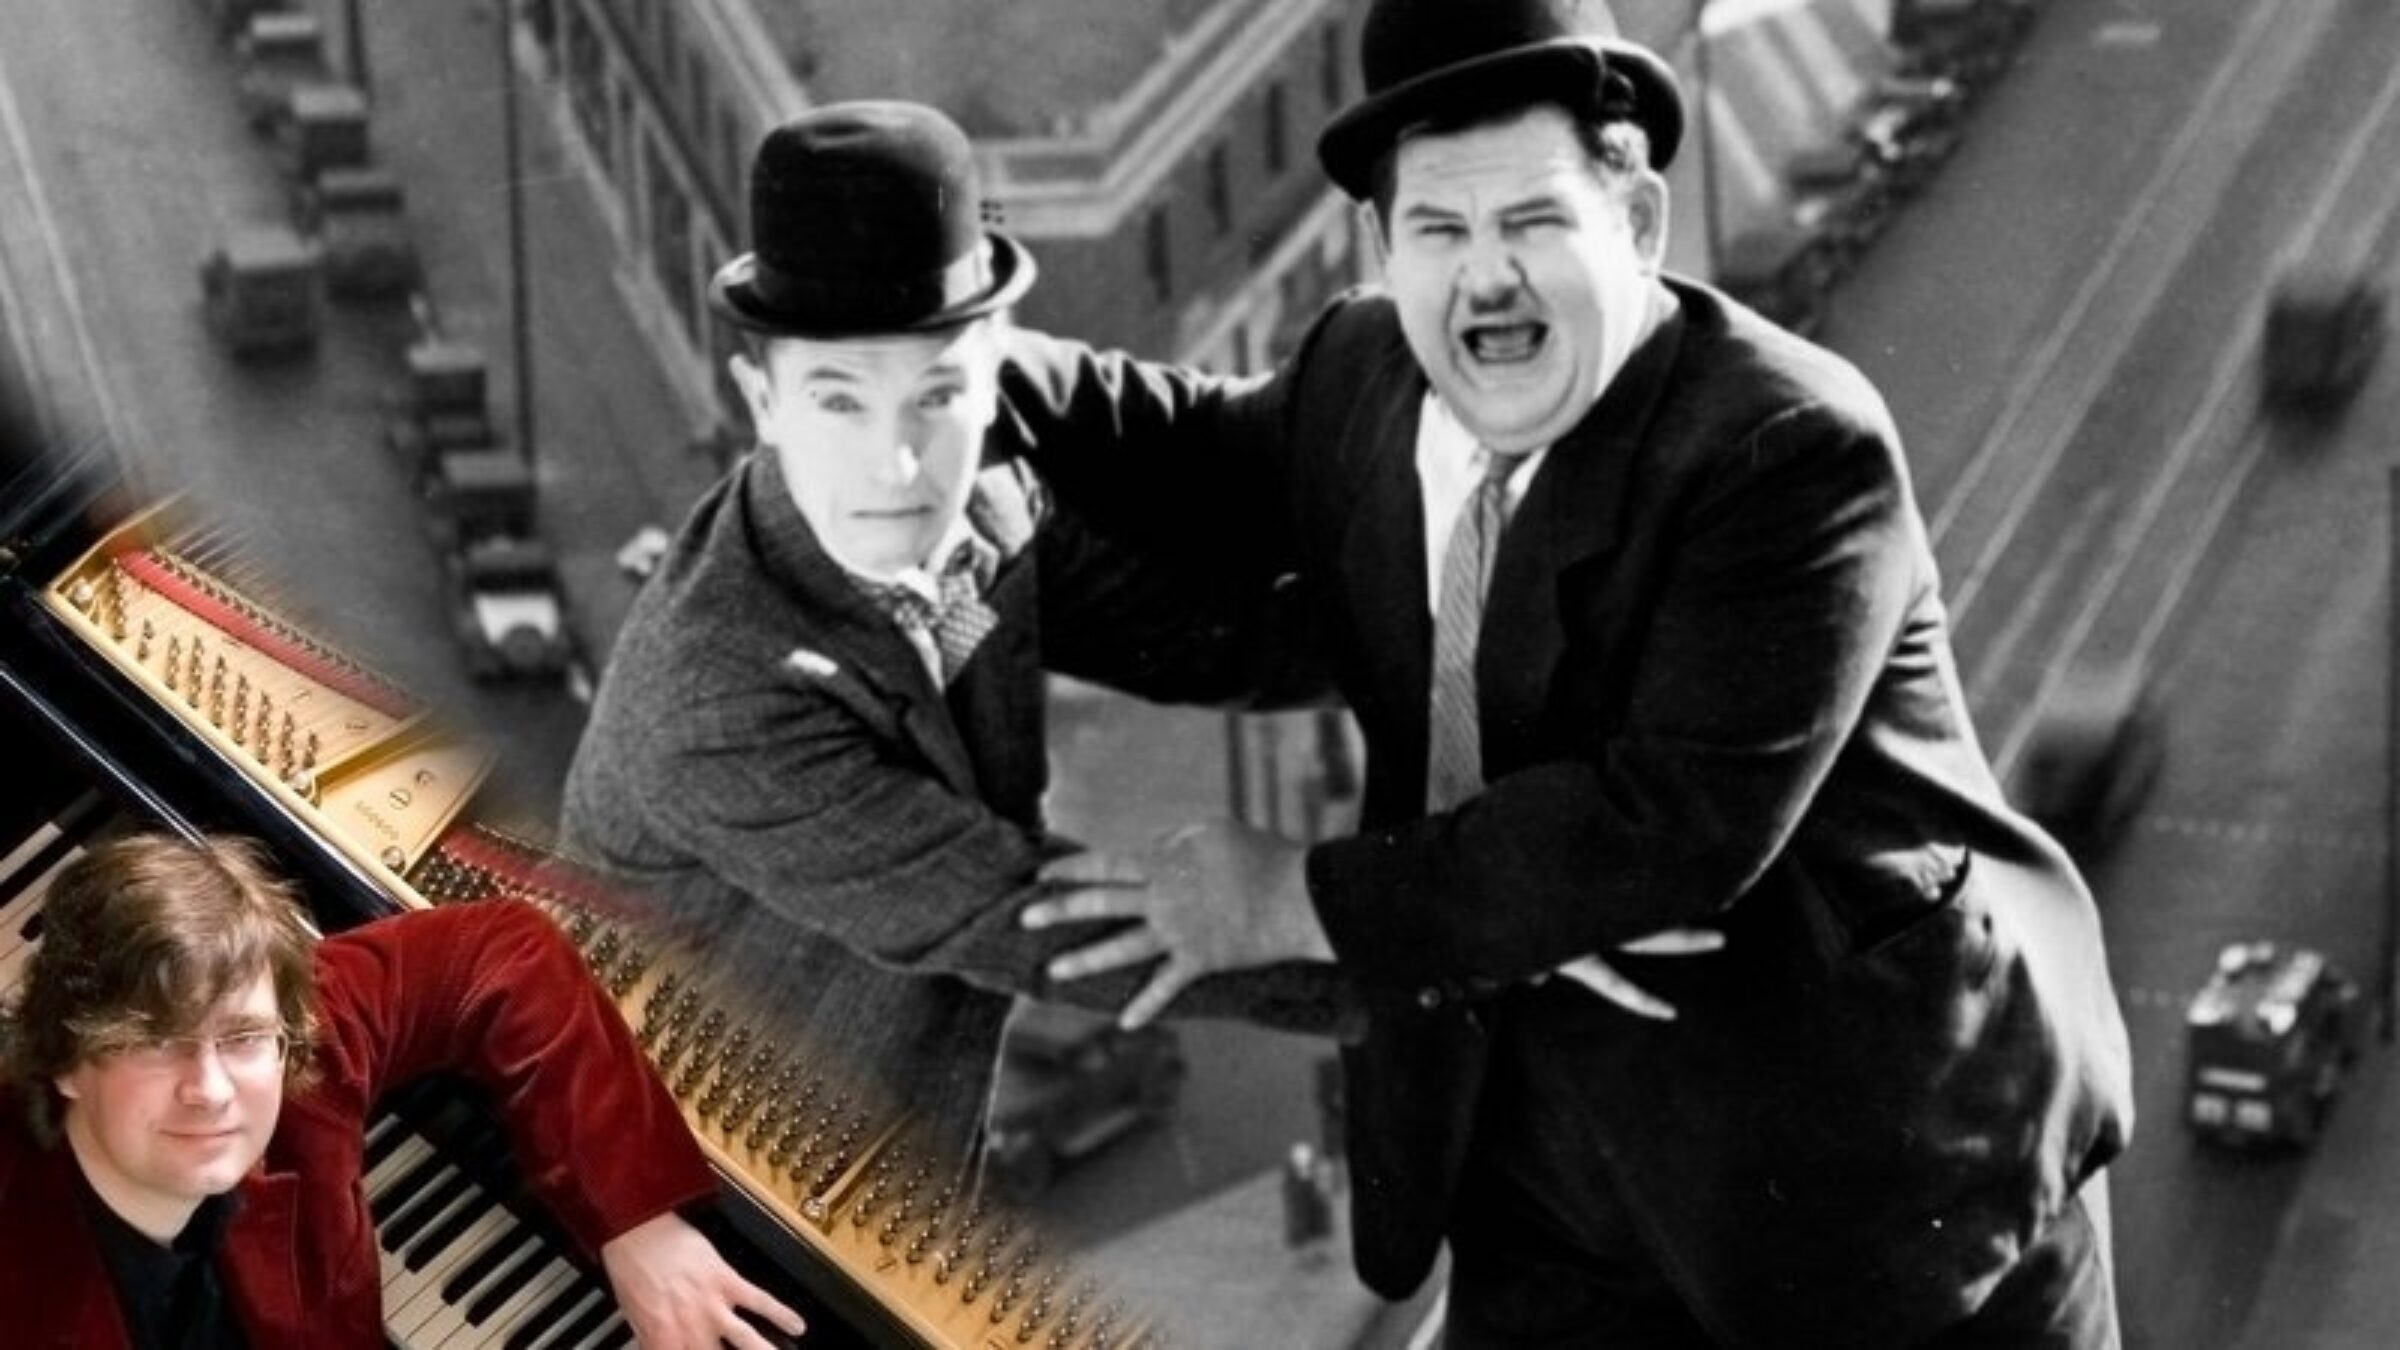 The silent movie project: Laurel and Hardy